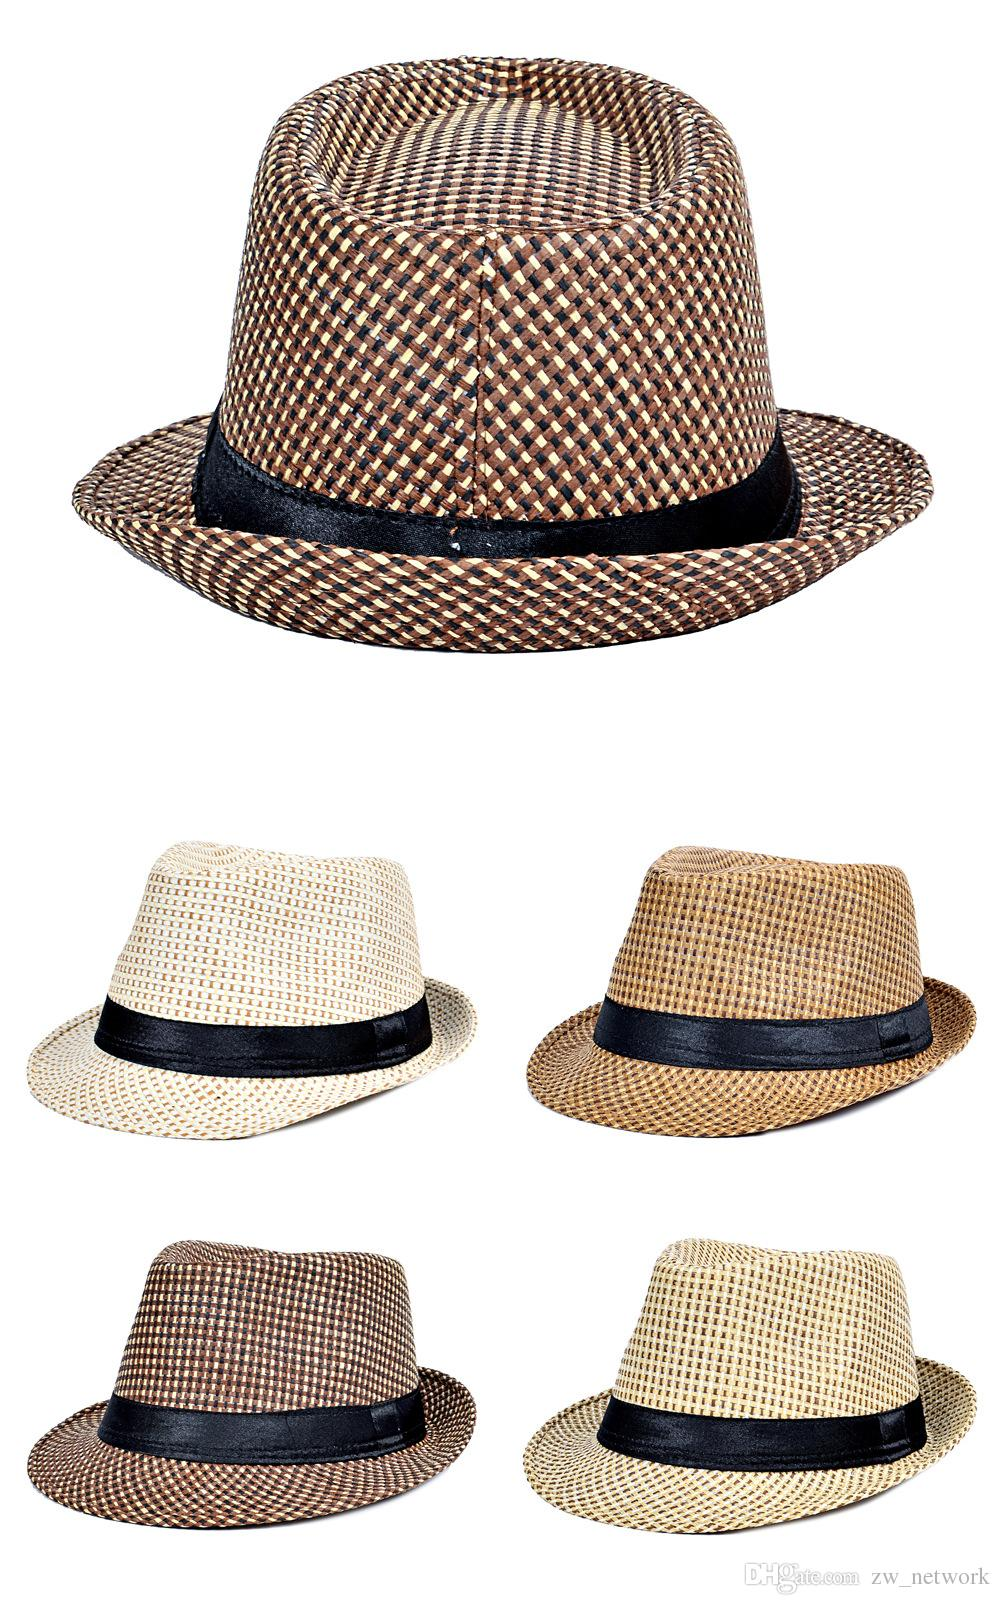 bb55c669904 Hot Fashion Jazz Straw Hats For Men Panama Woven Hats Wide Brim Sun Hats  Cool Men Jazz Top Caps Kids Hats Wide Brim Hat From Zw network